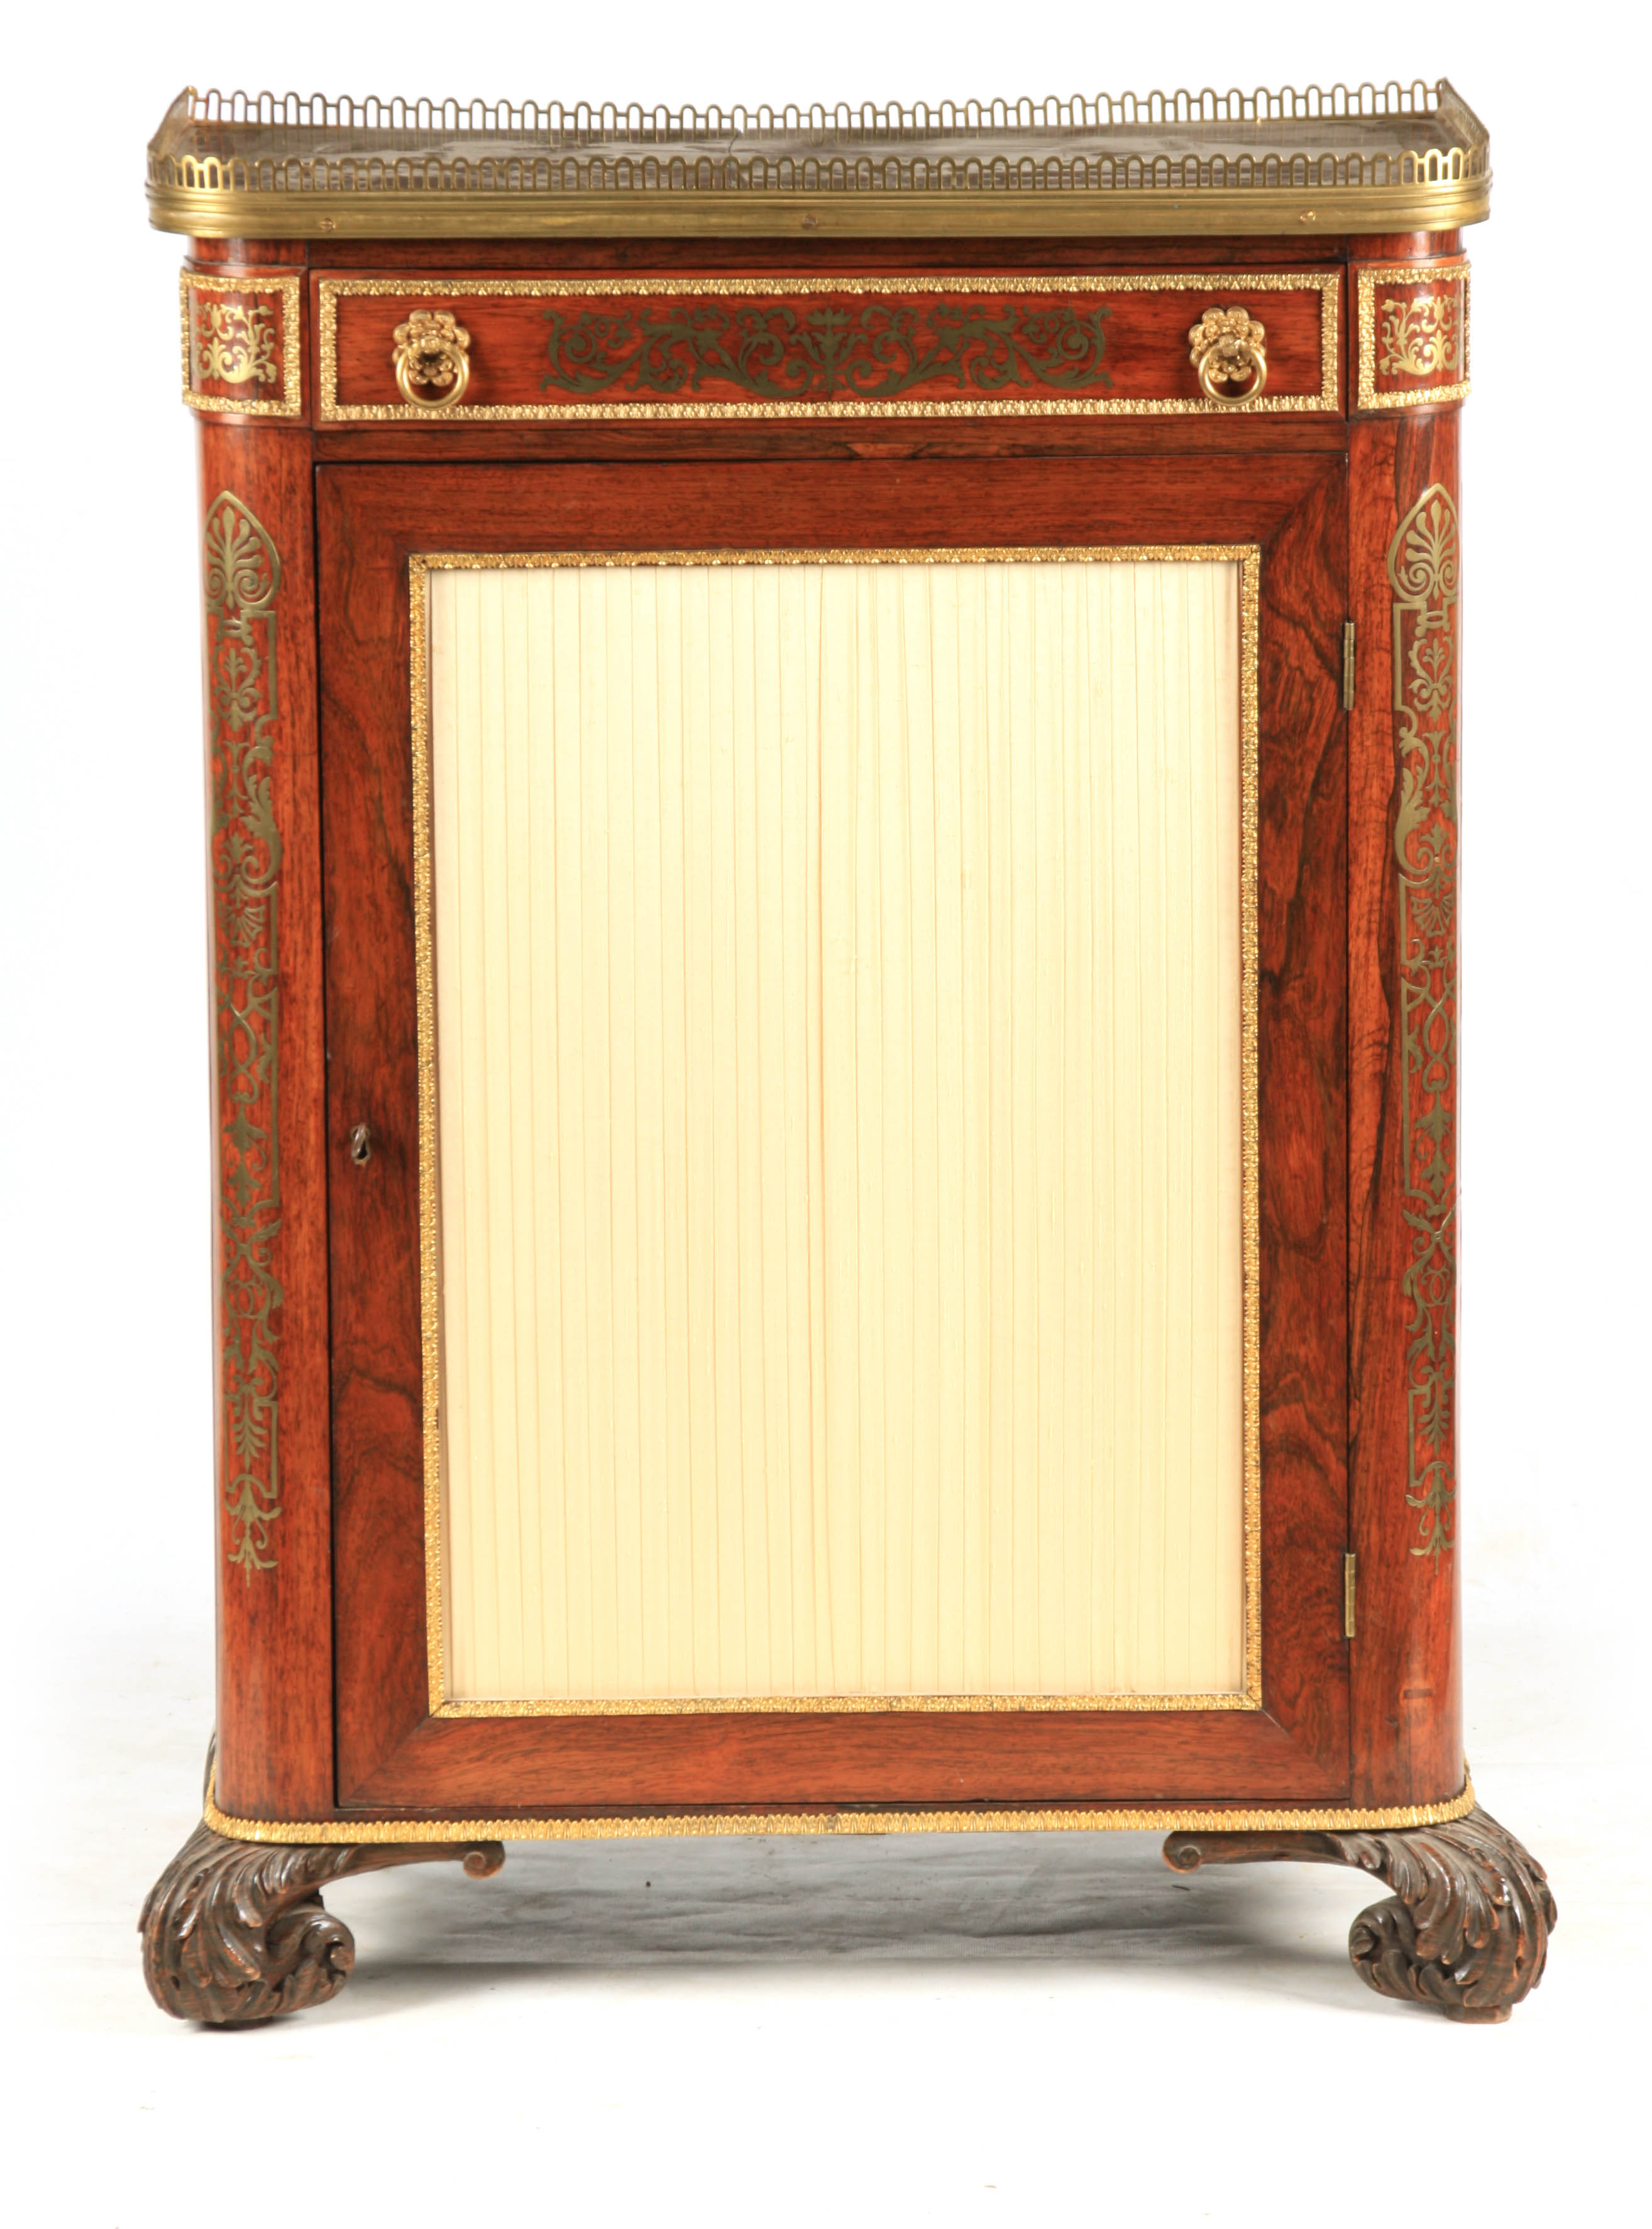 A FINE REGENCY BRASS INLAID ROSEWOOD SIDE CABINET IN THE MANNER OF JOHN MCCLEAN the brass